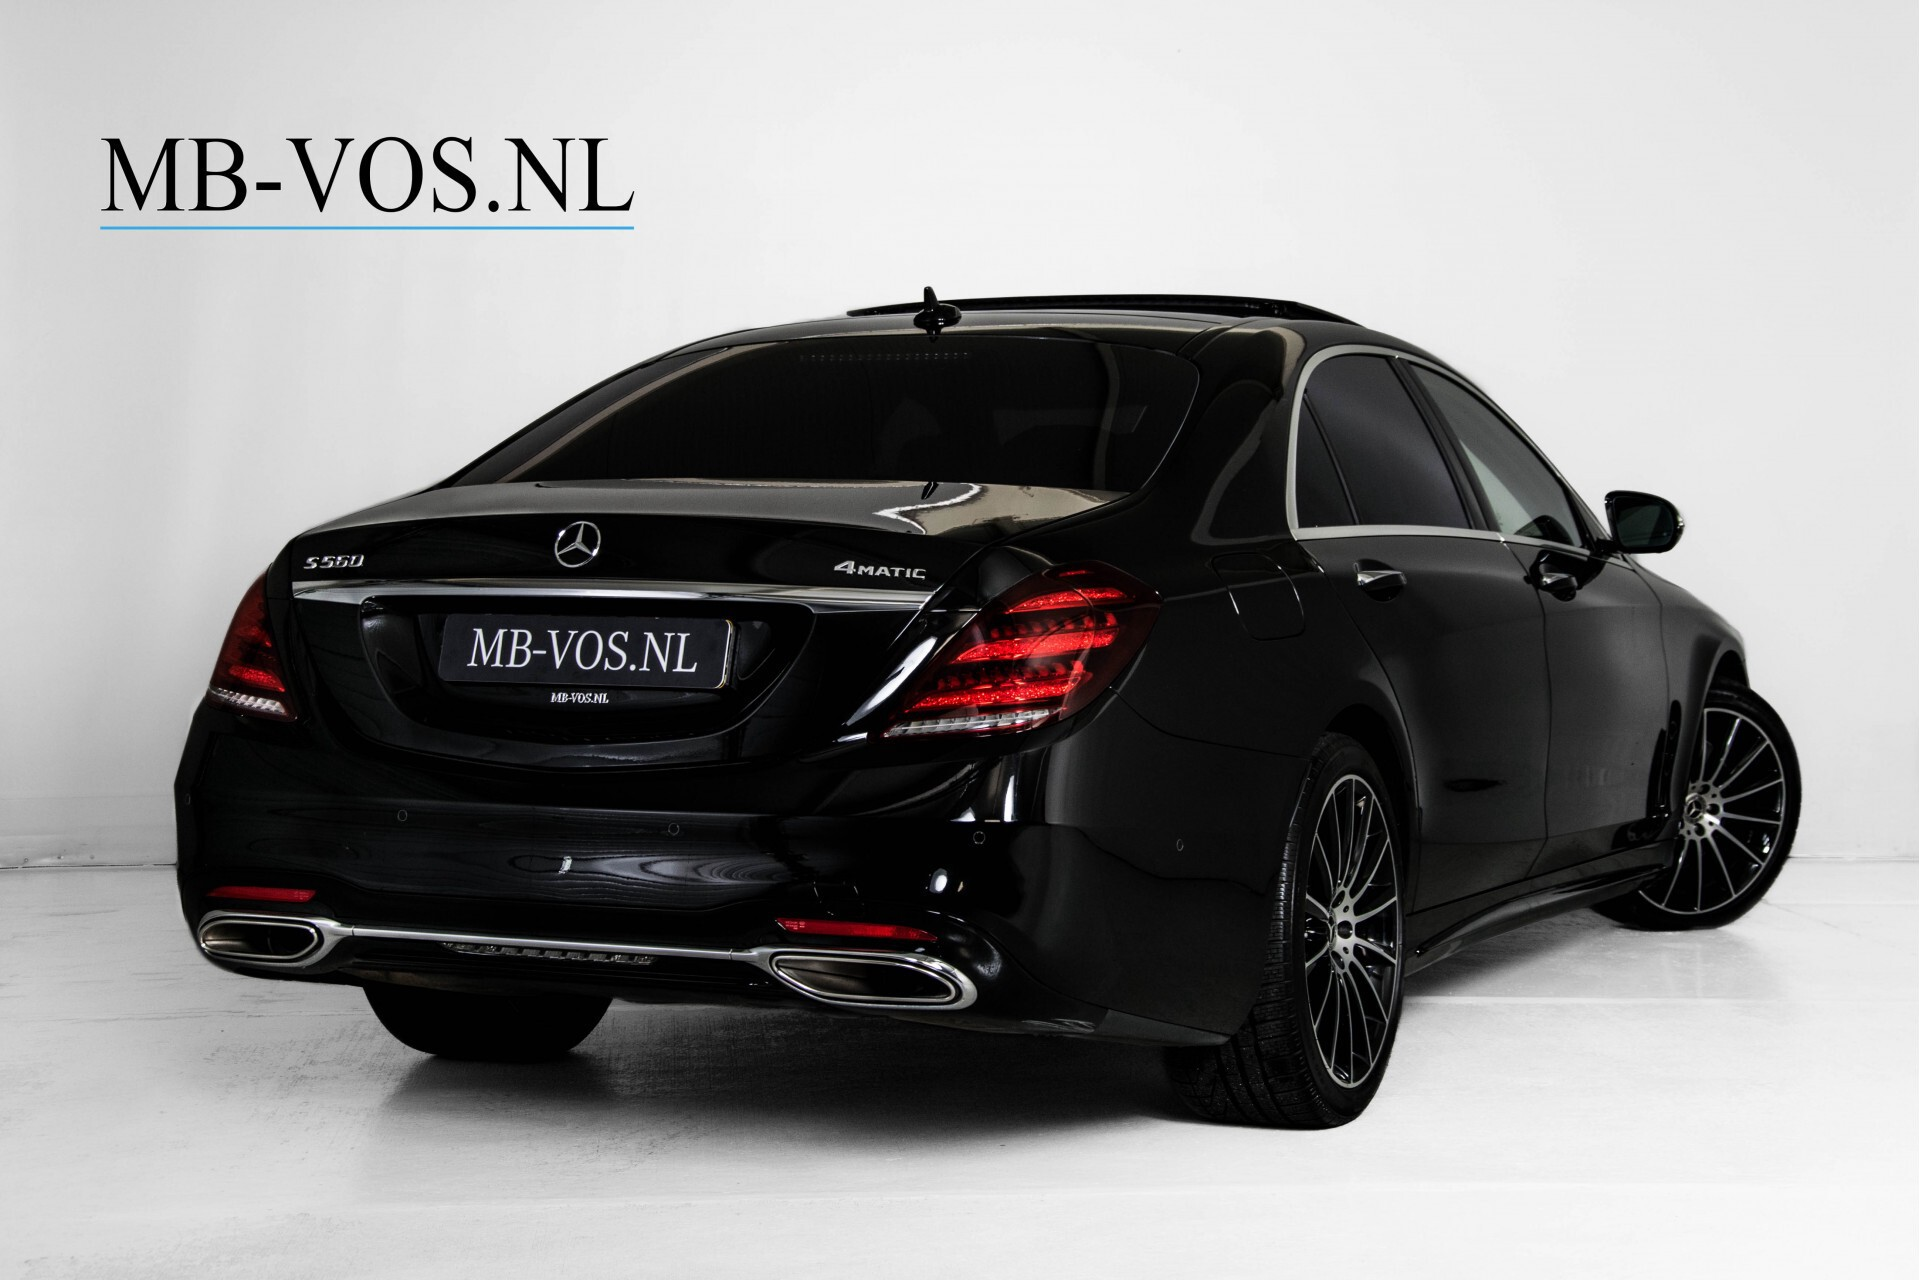 Mercedes-Benz S-Klasse 560 4-M Lang AMG Plus Exclusive Entertainment/Massage Aut9 Foto 2